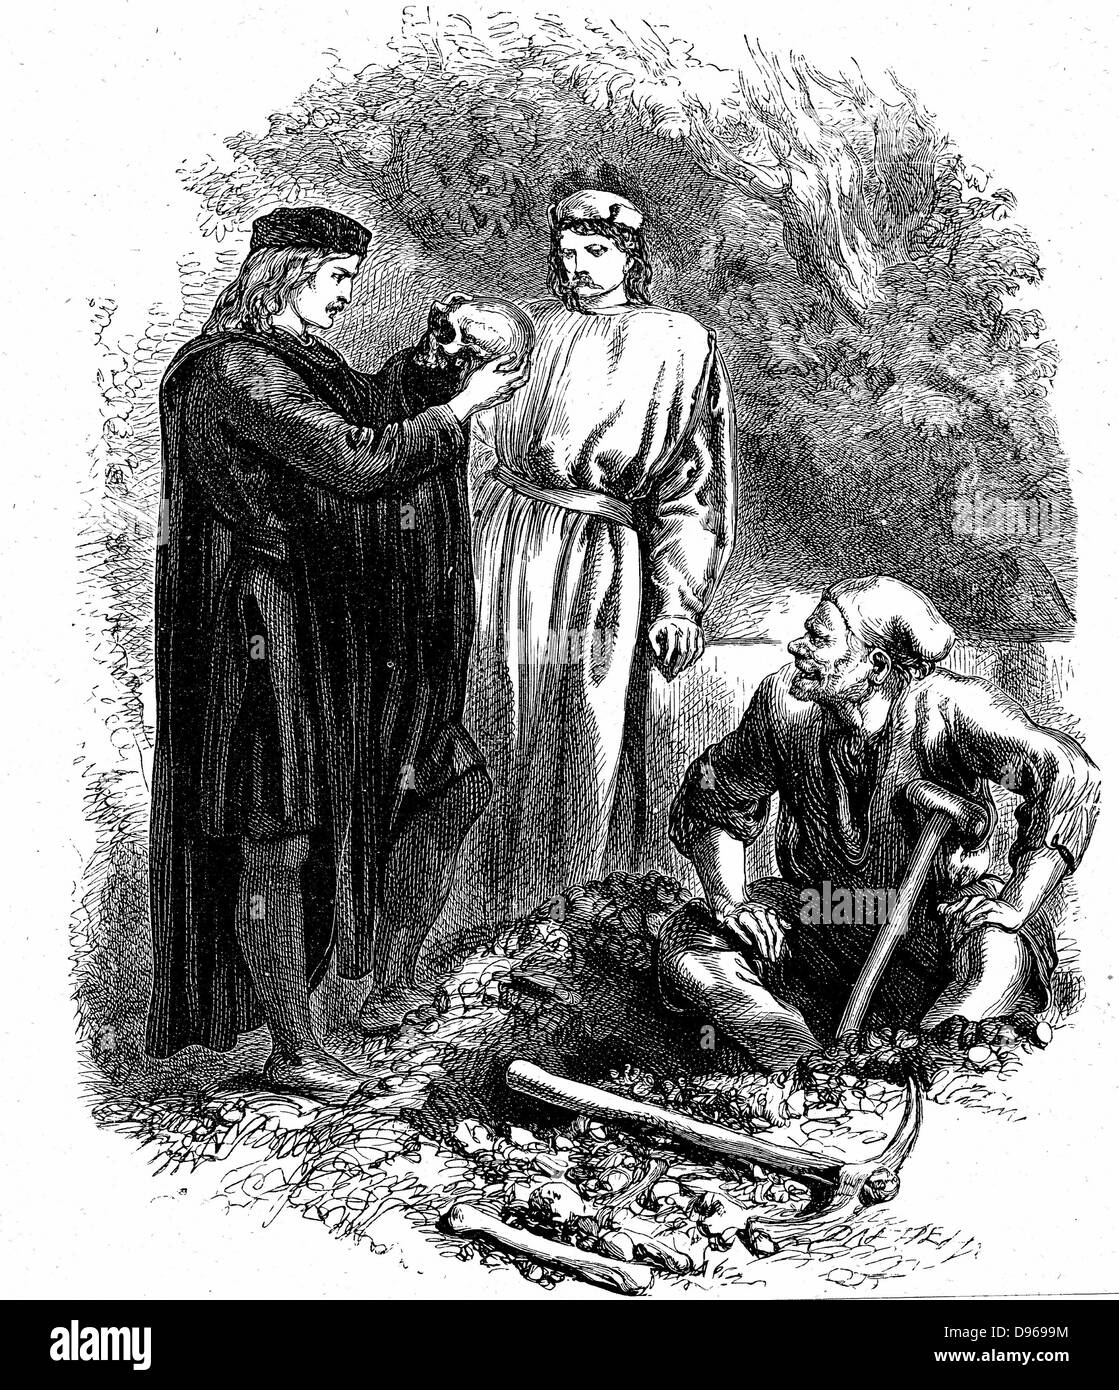 Alas, poor Yorick! I knew him, Horatio' Hamlet in the graveyard with Horatio and the clown, examines Yorick's - Stock Image